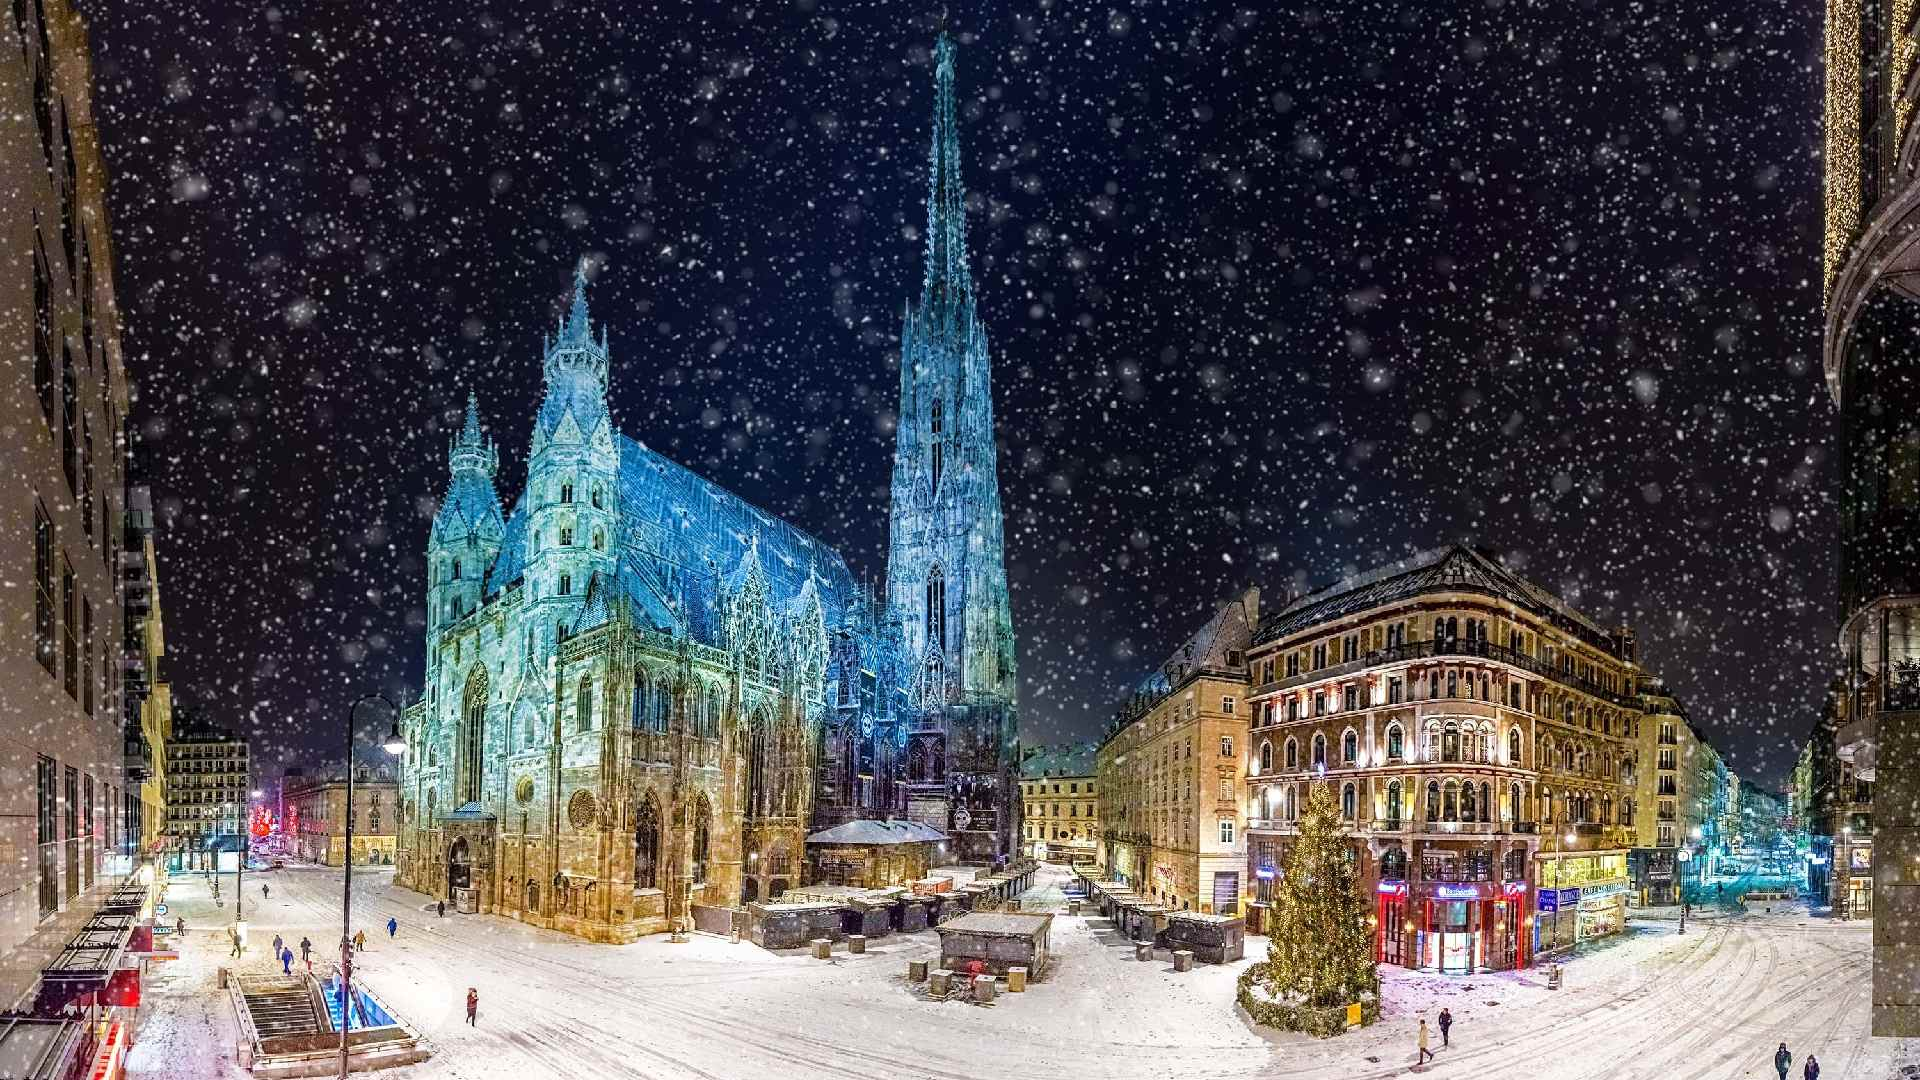 New Year Winter Fun Vacation Destinations in Europe